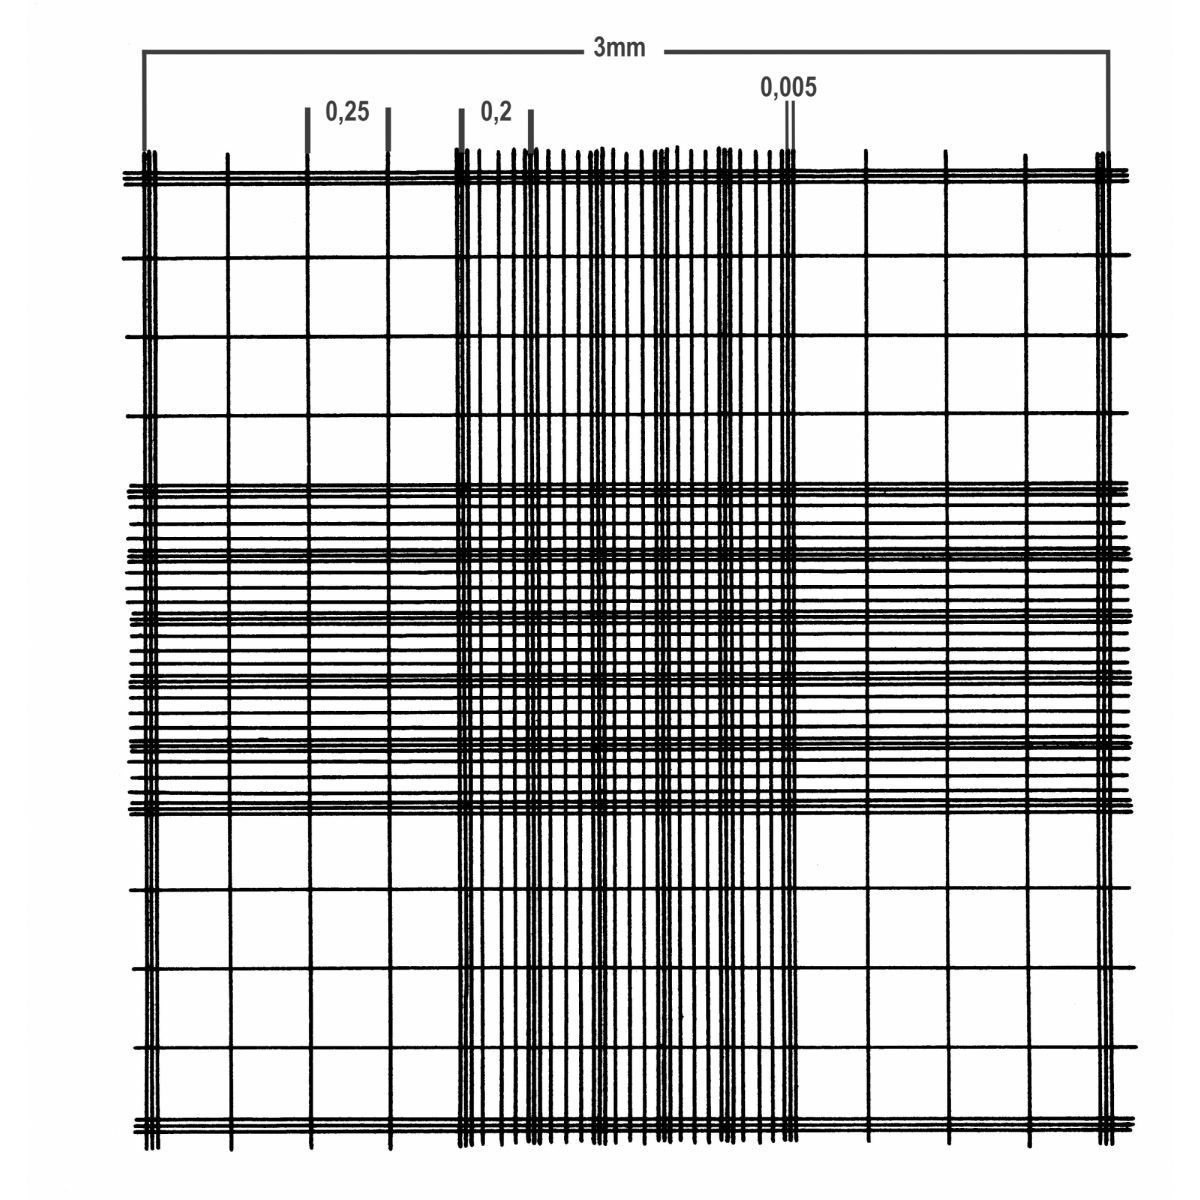 Picture of Assistent Improved Neubauer Counting Chambers - 40442002